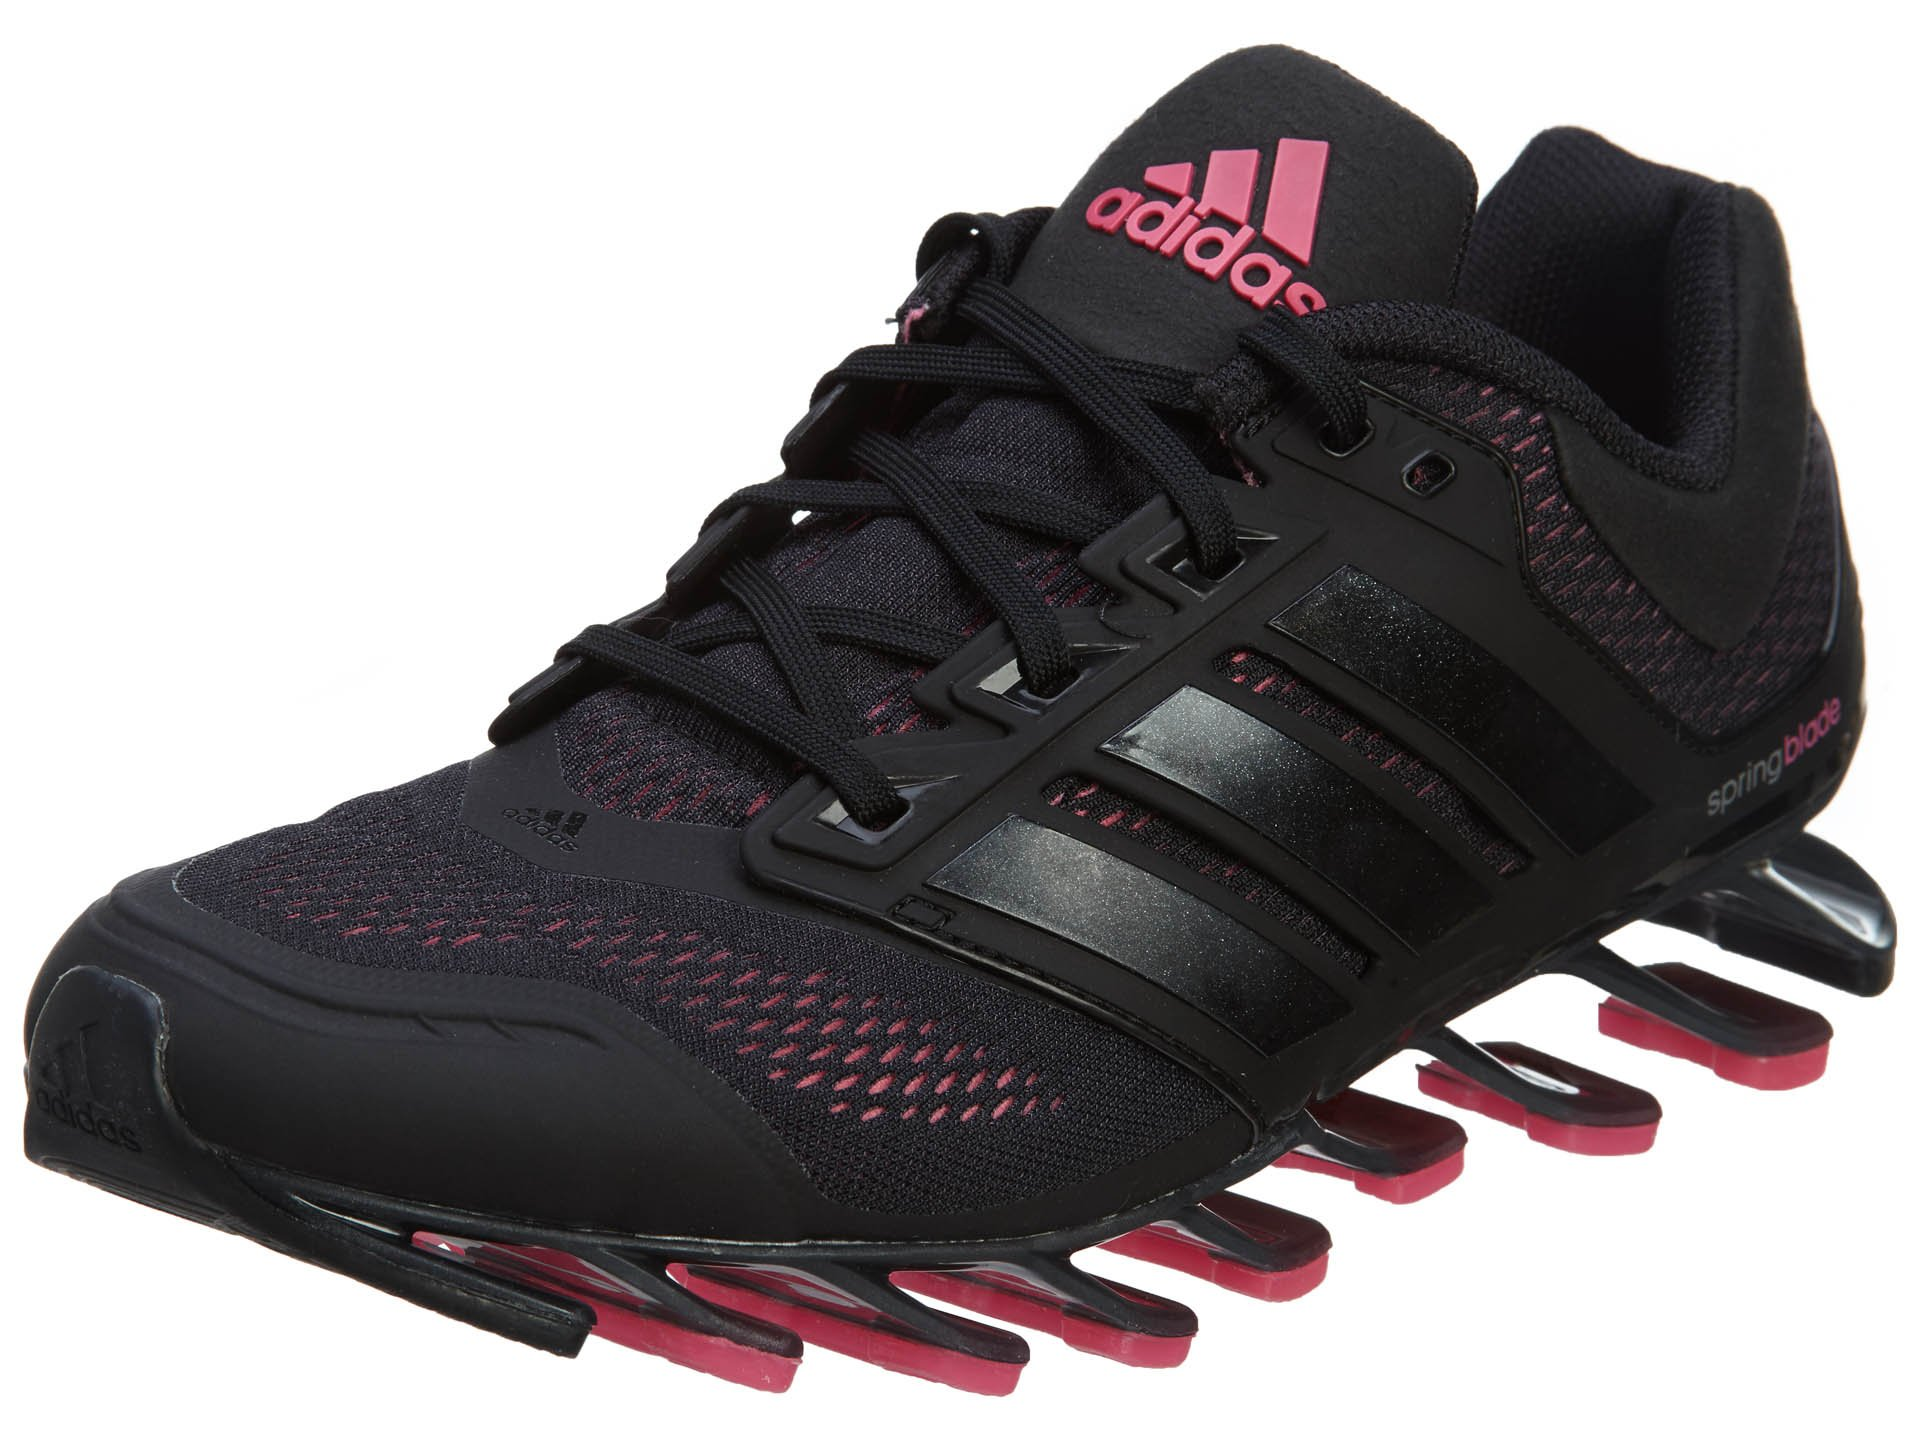 Adidas Springblade Drive Womens Style: D73958-CBLK/PNK/CBLK Size: 9 by adidas